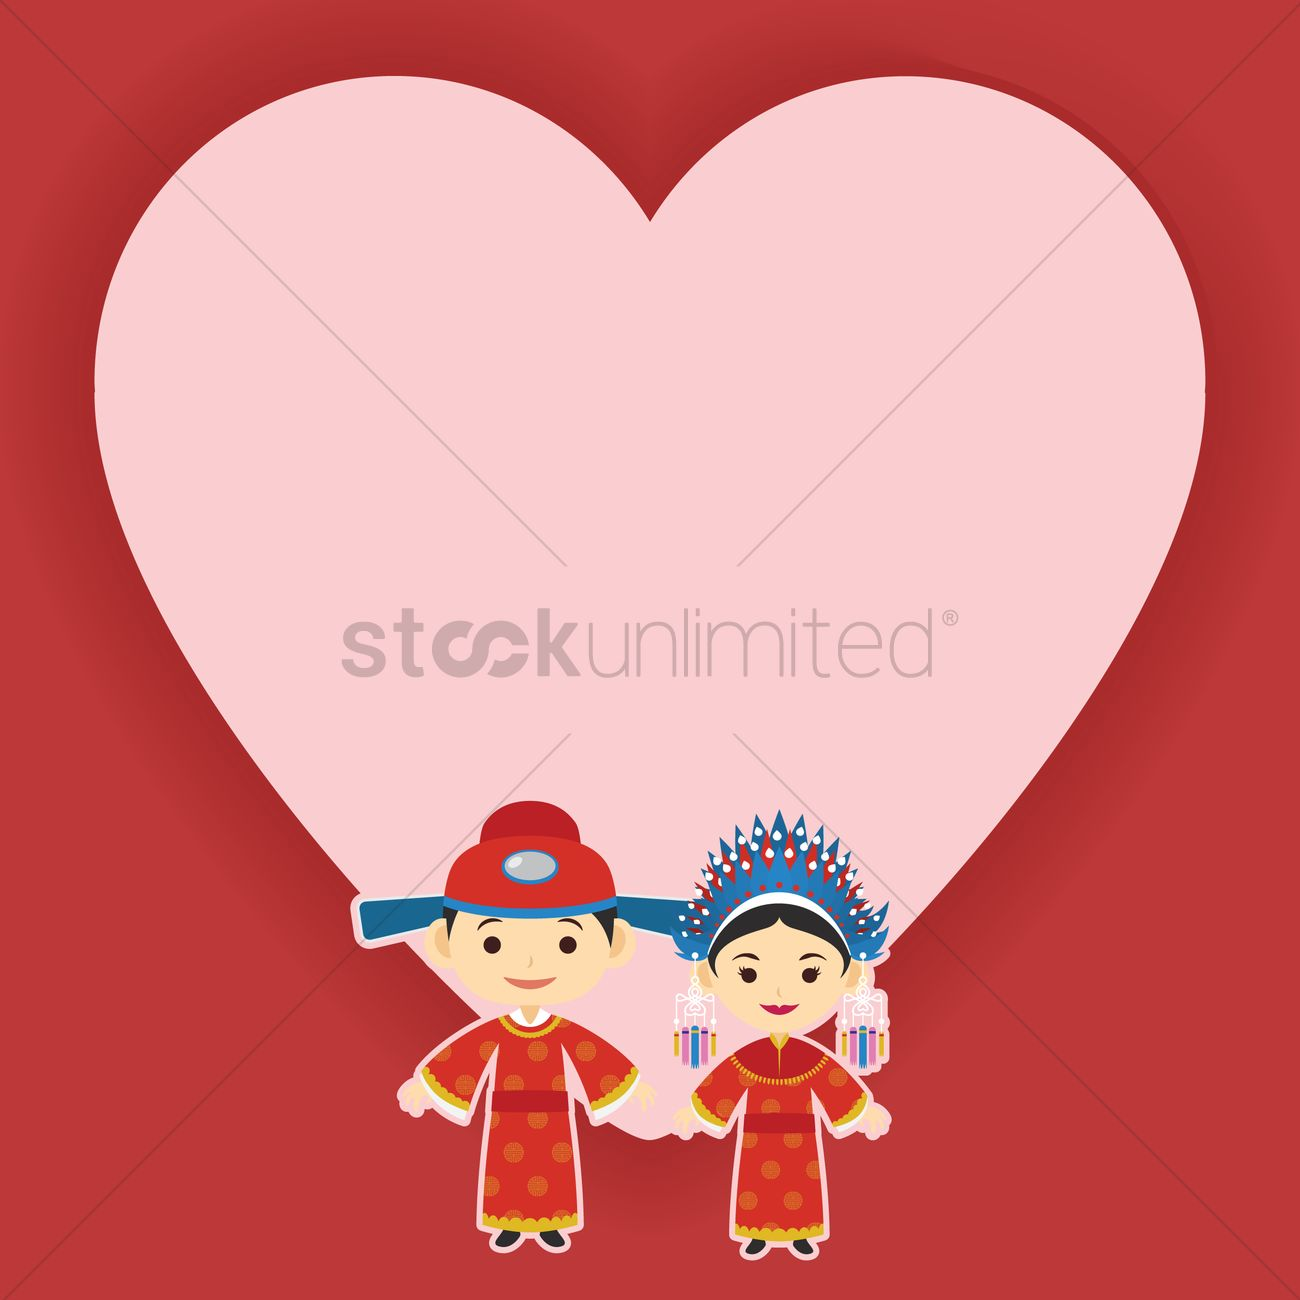 Chinese wedding invitation card design Vector Image - 1244210 ...